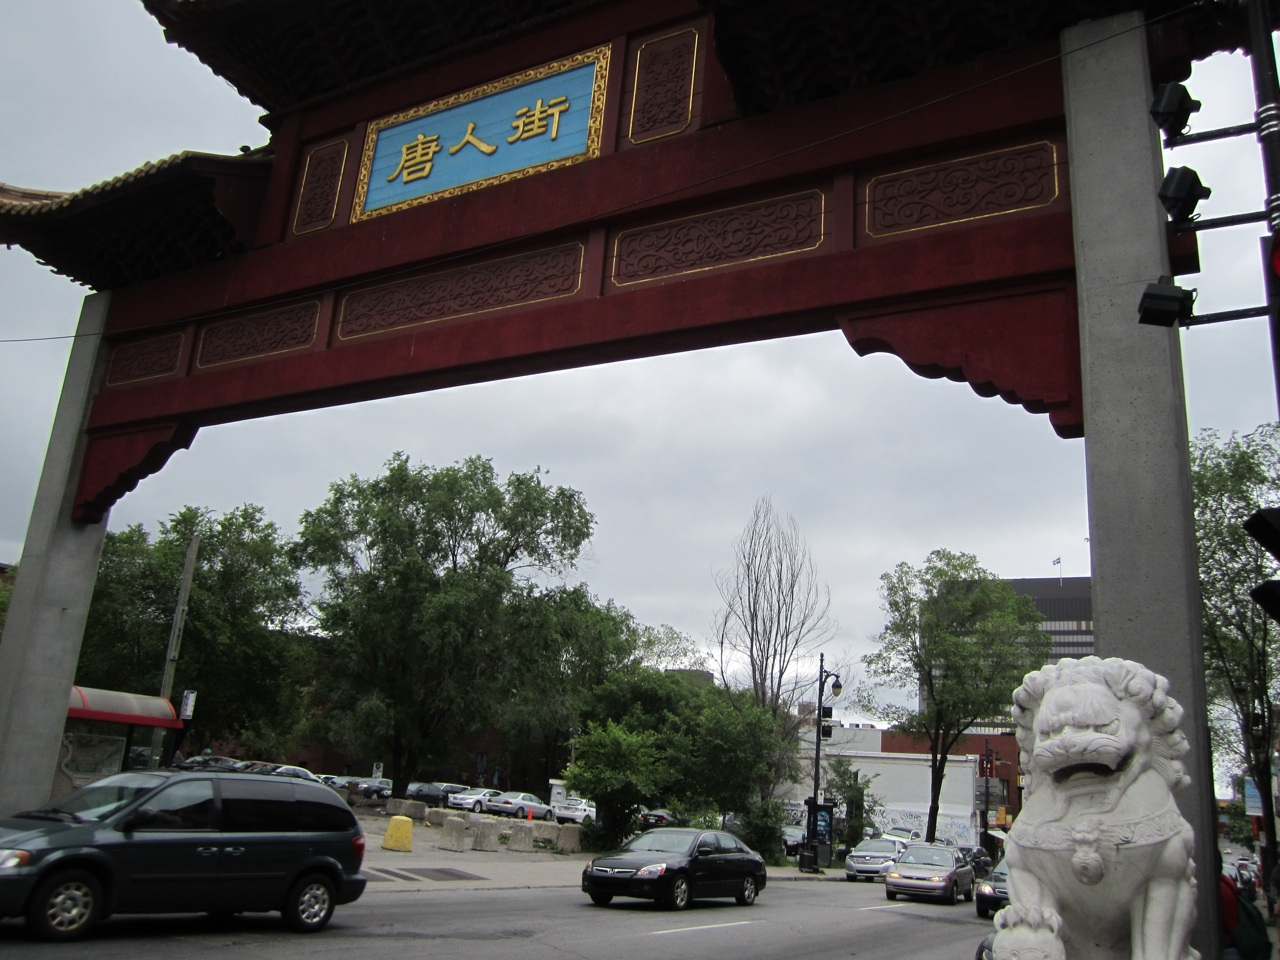 One Of The Entrance ways Into Chinatown